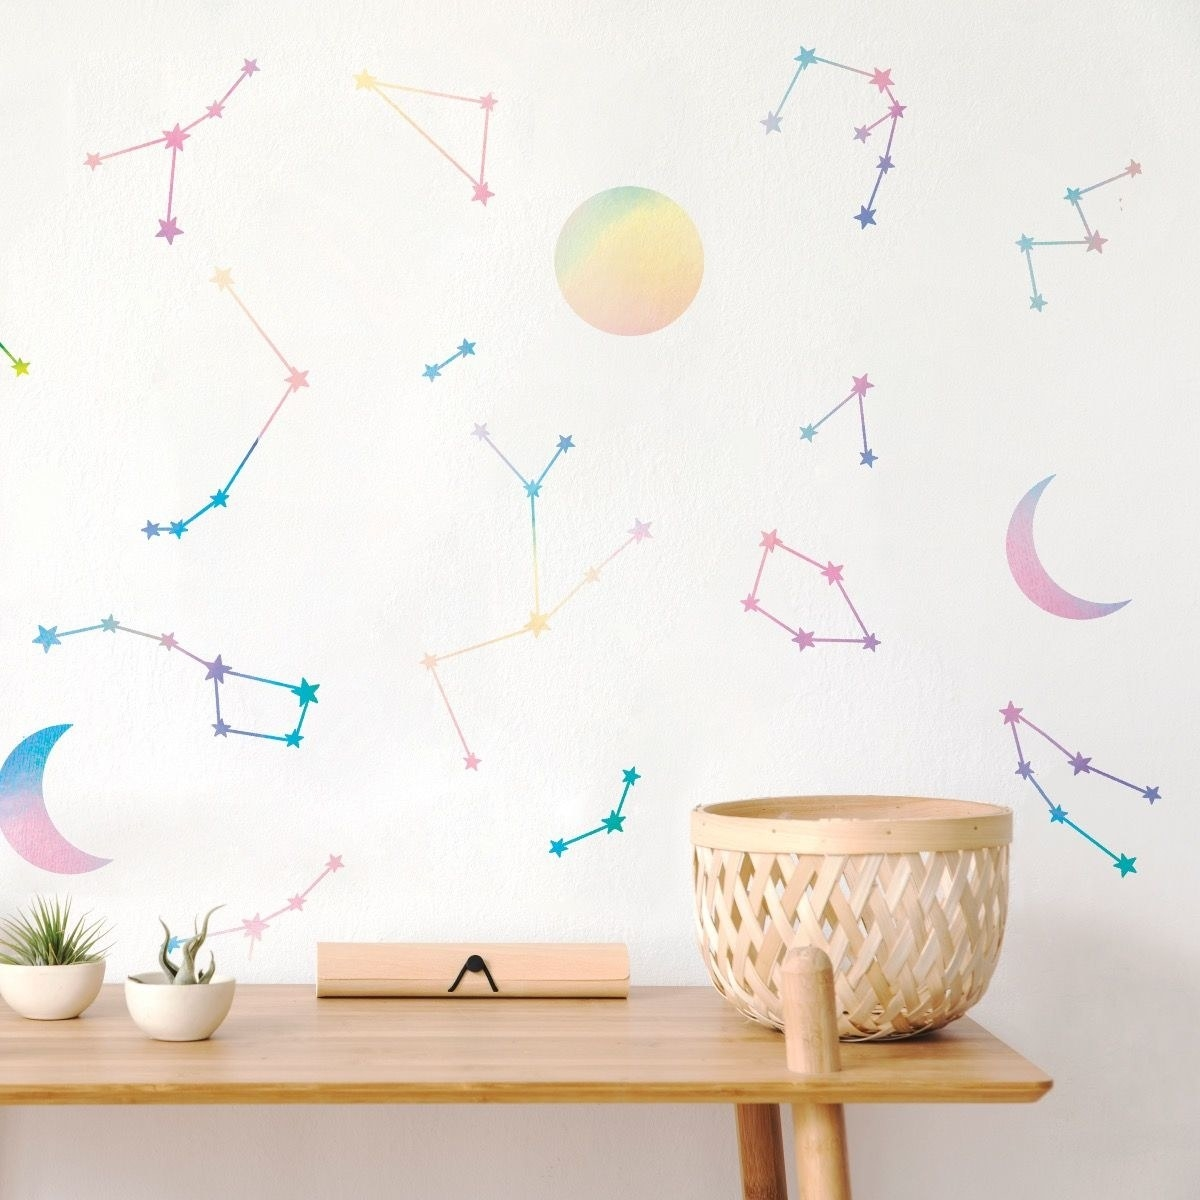 A wall covered in rainbow constellations and moons